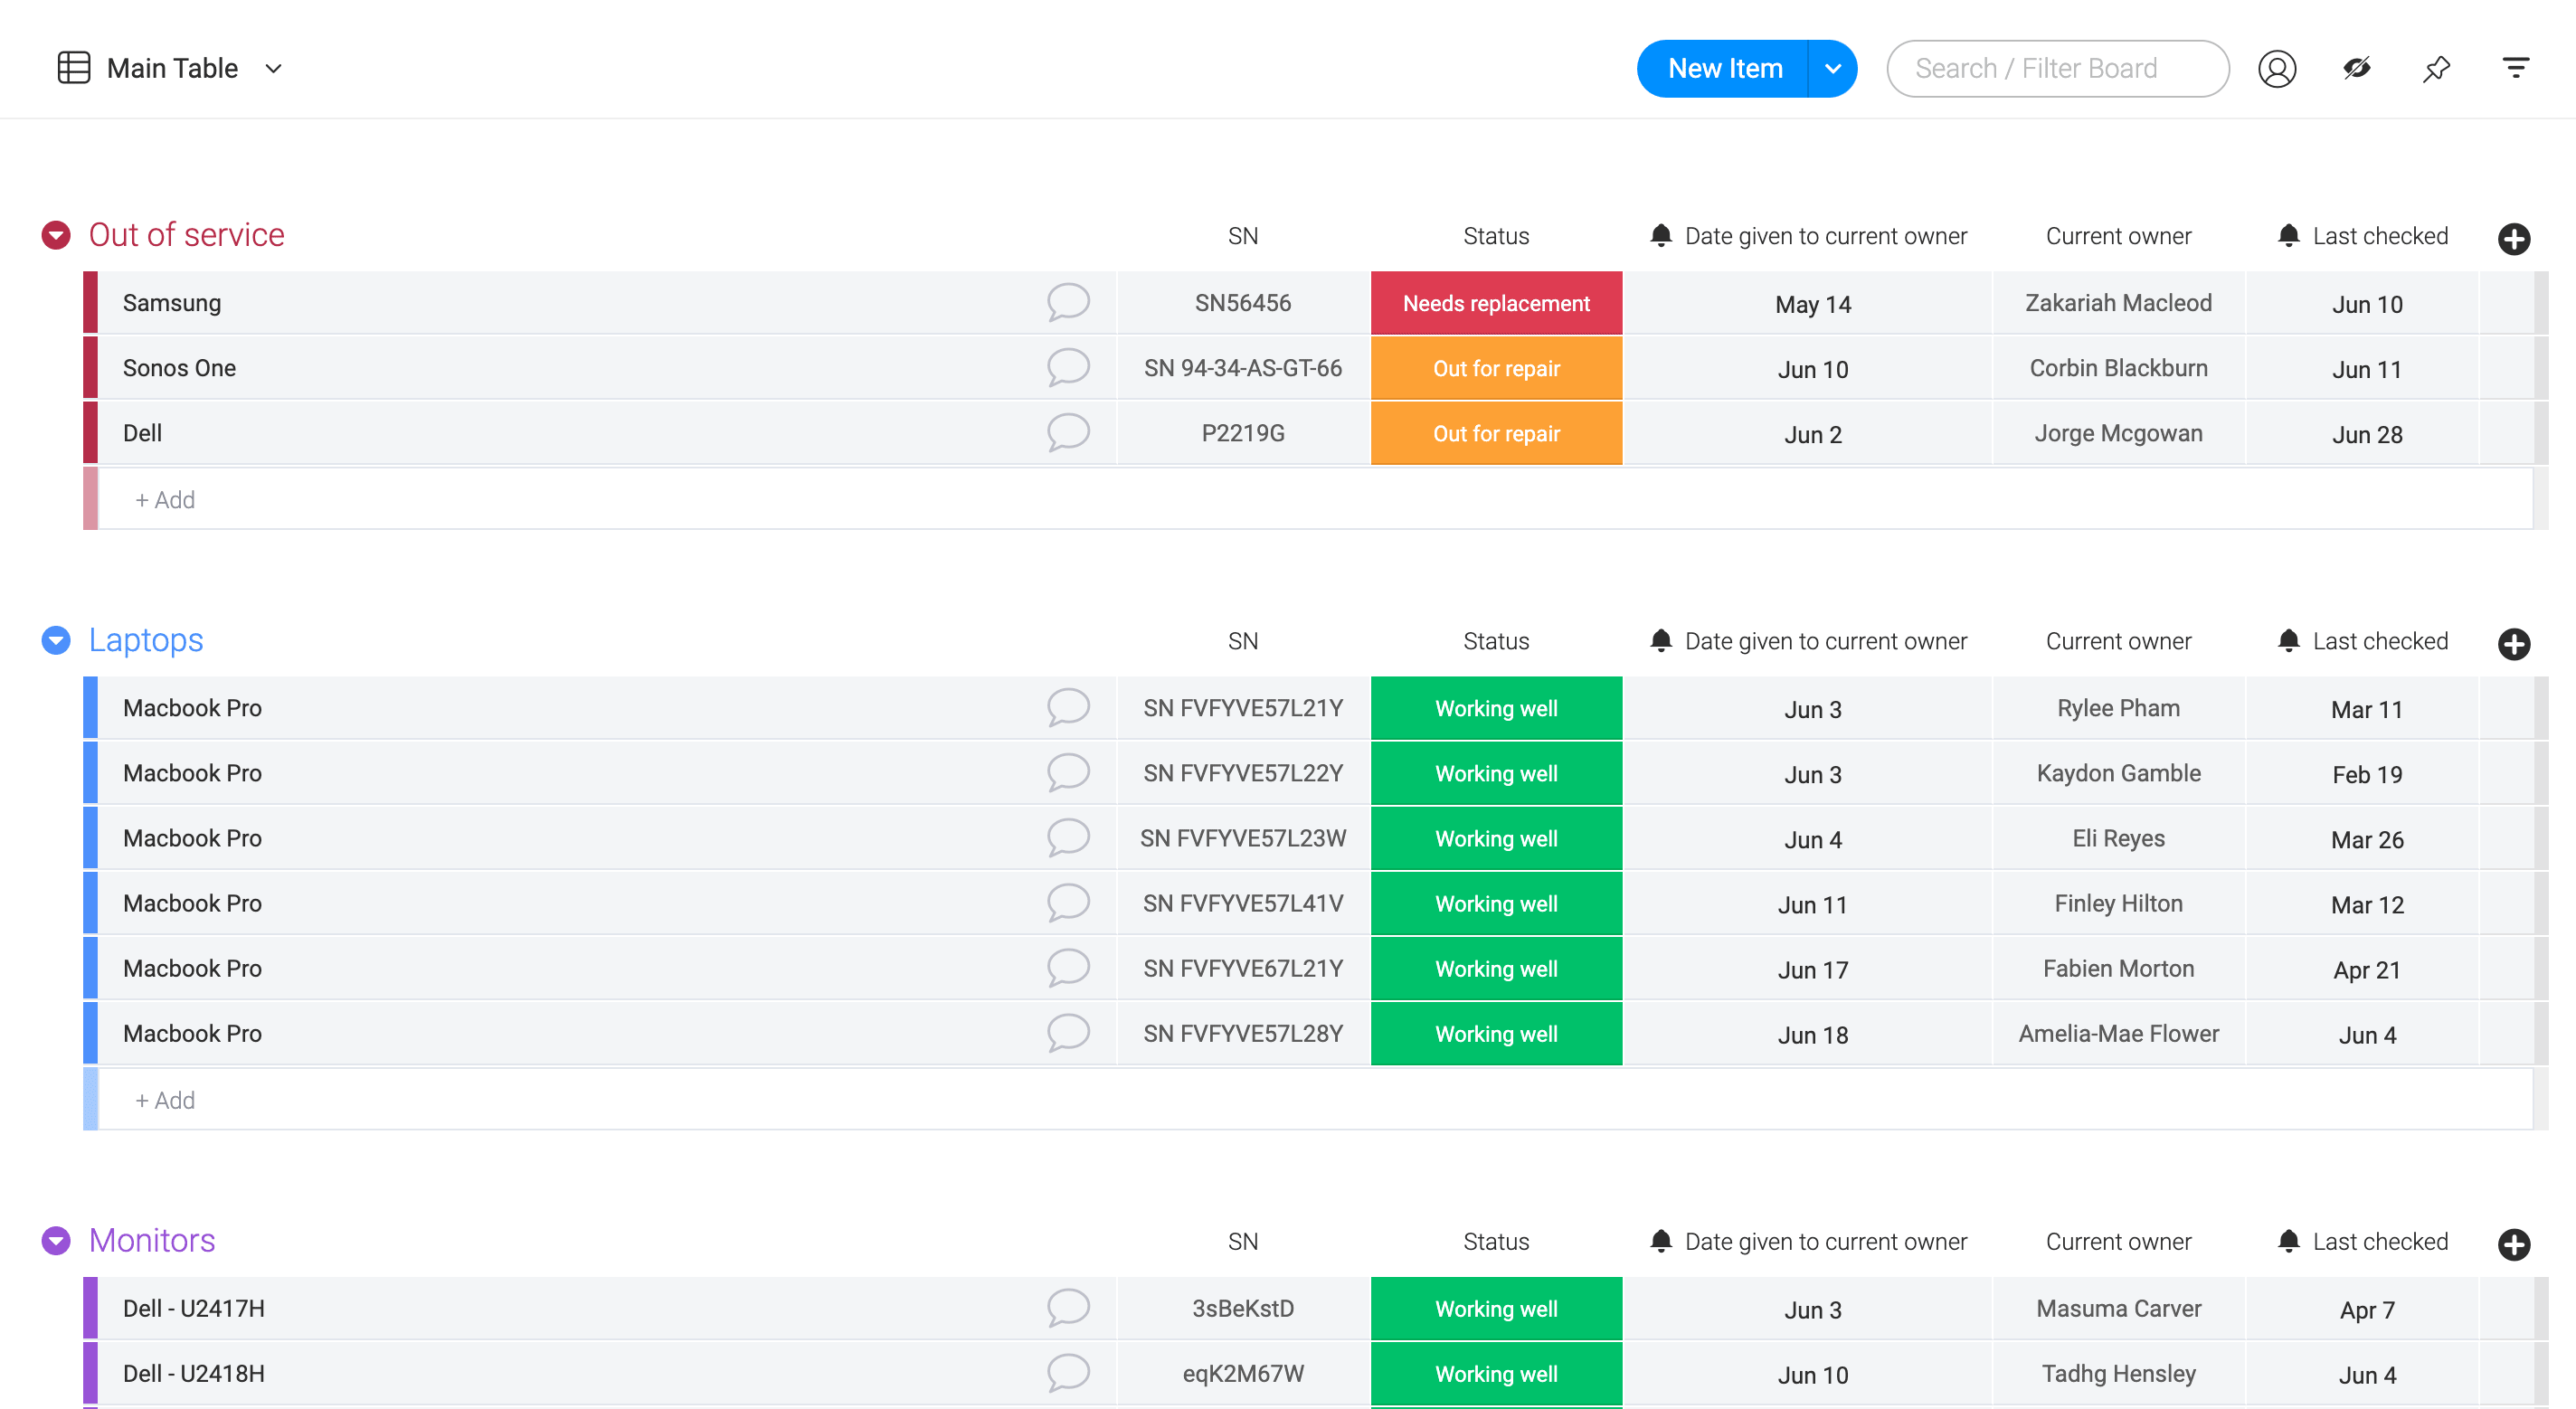 Track your inventory with ease